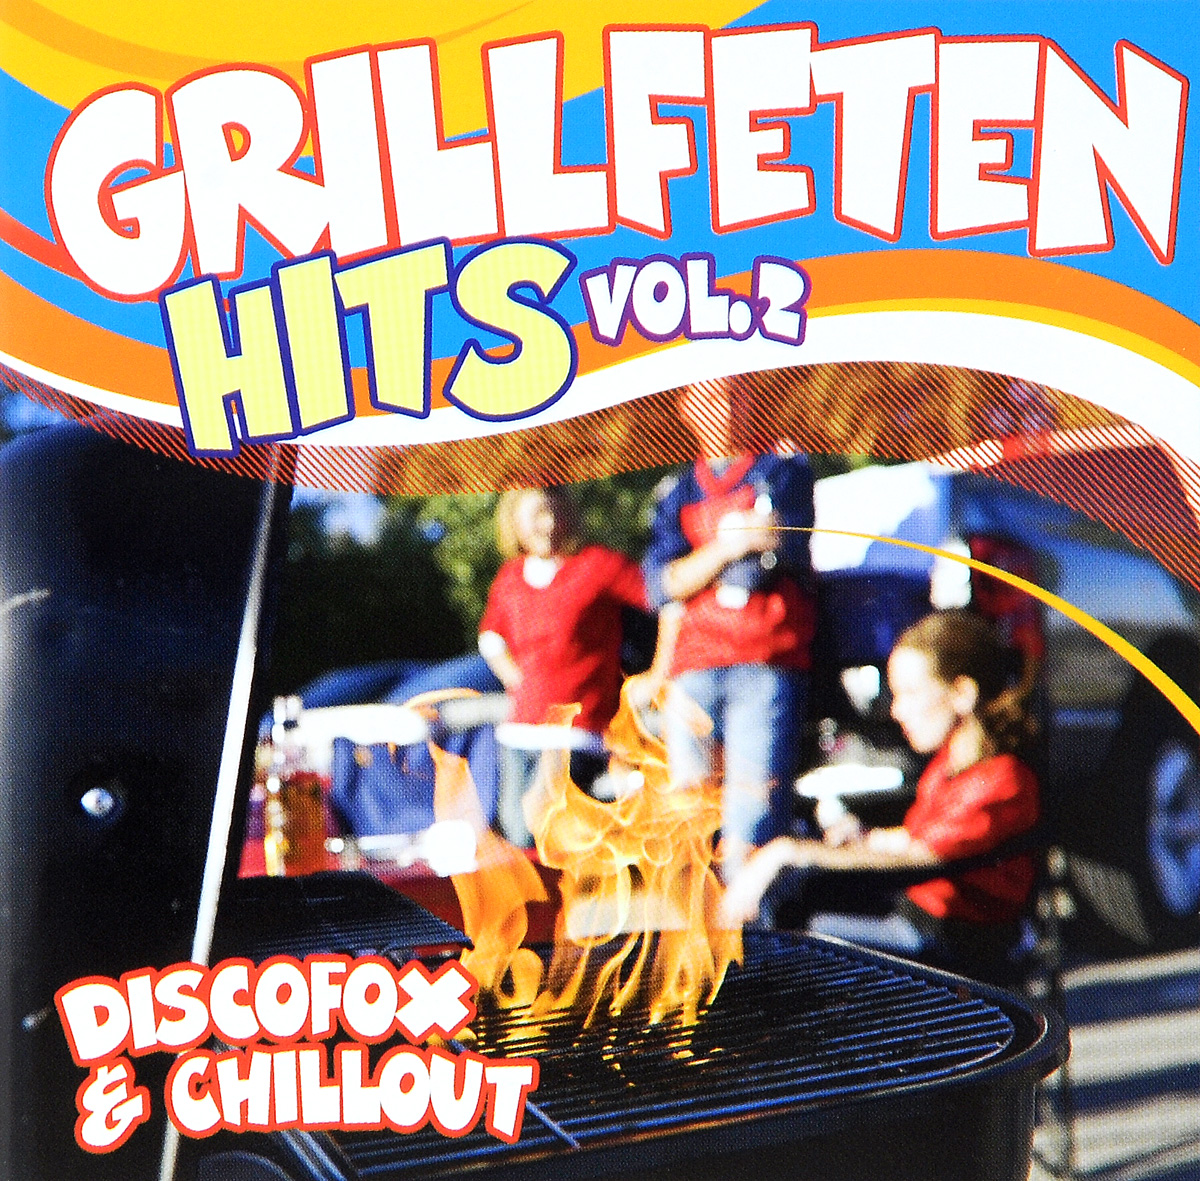 Grillfeten Hits. Vol. 2 (2 CD) массимо фарао piano world hits 2 cd